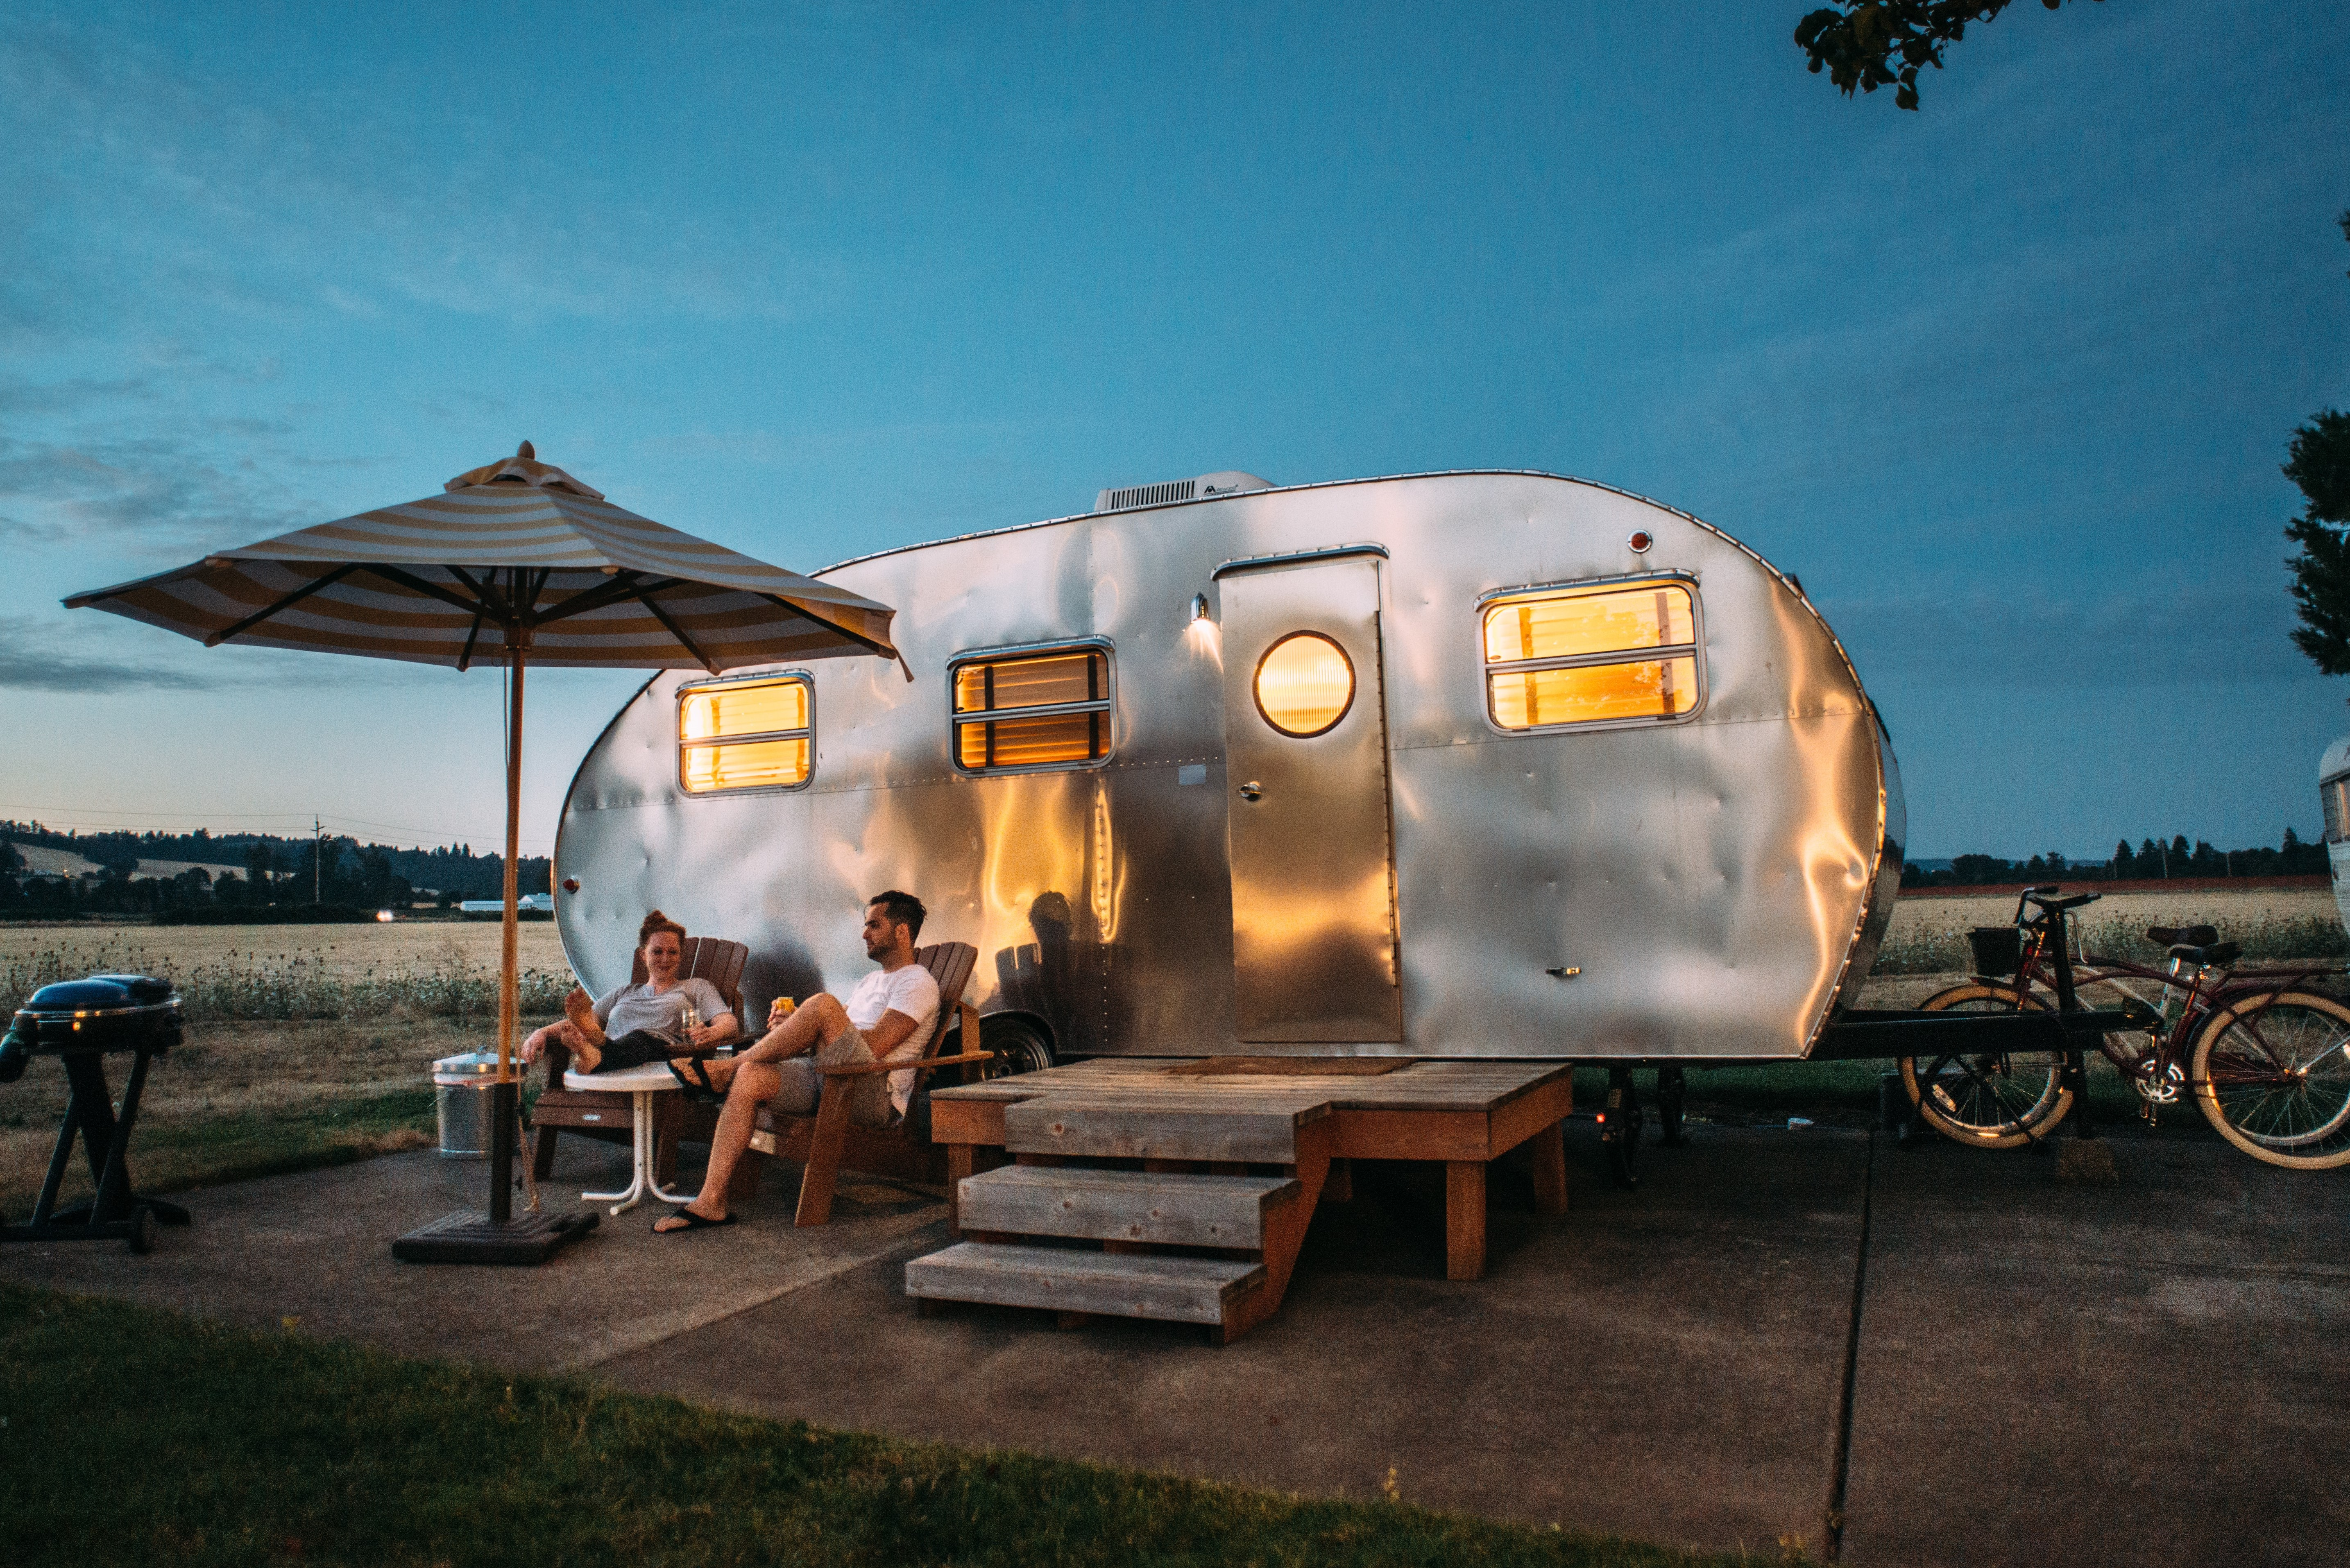 A couple camping with their trailer